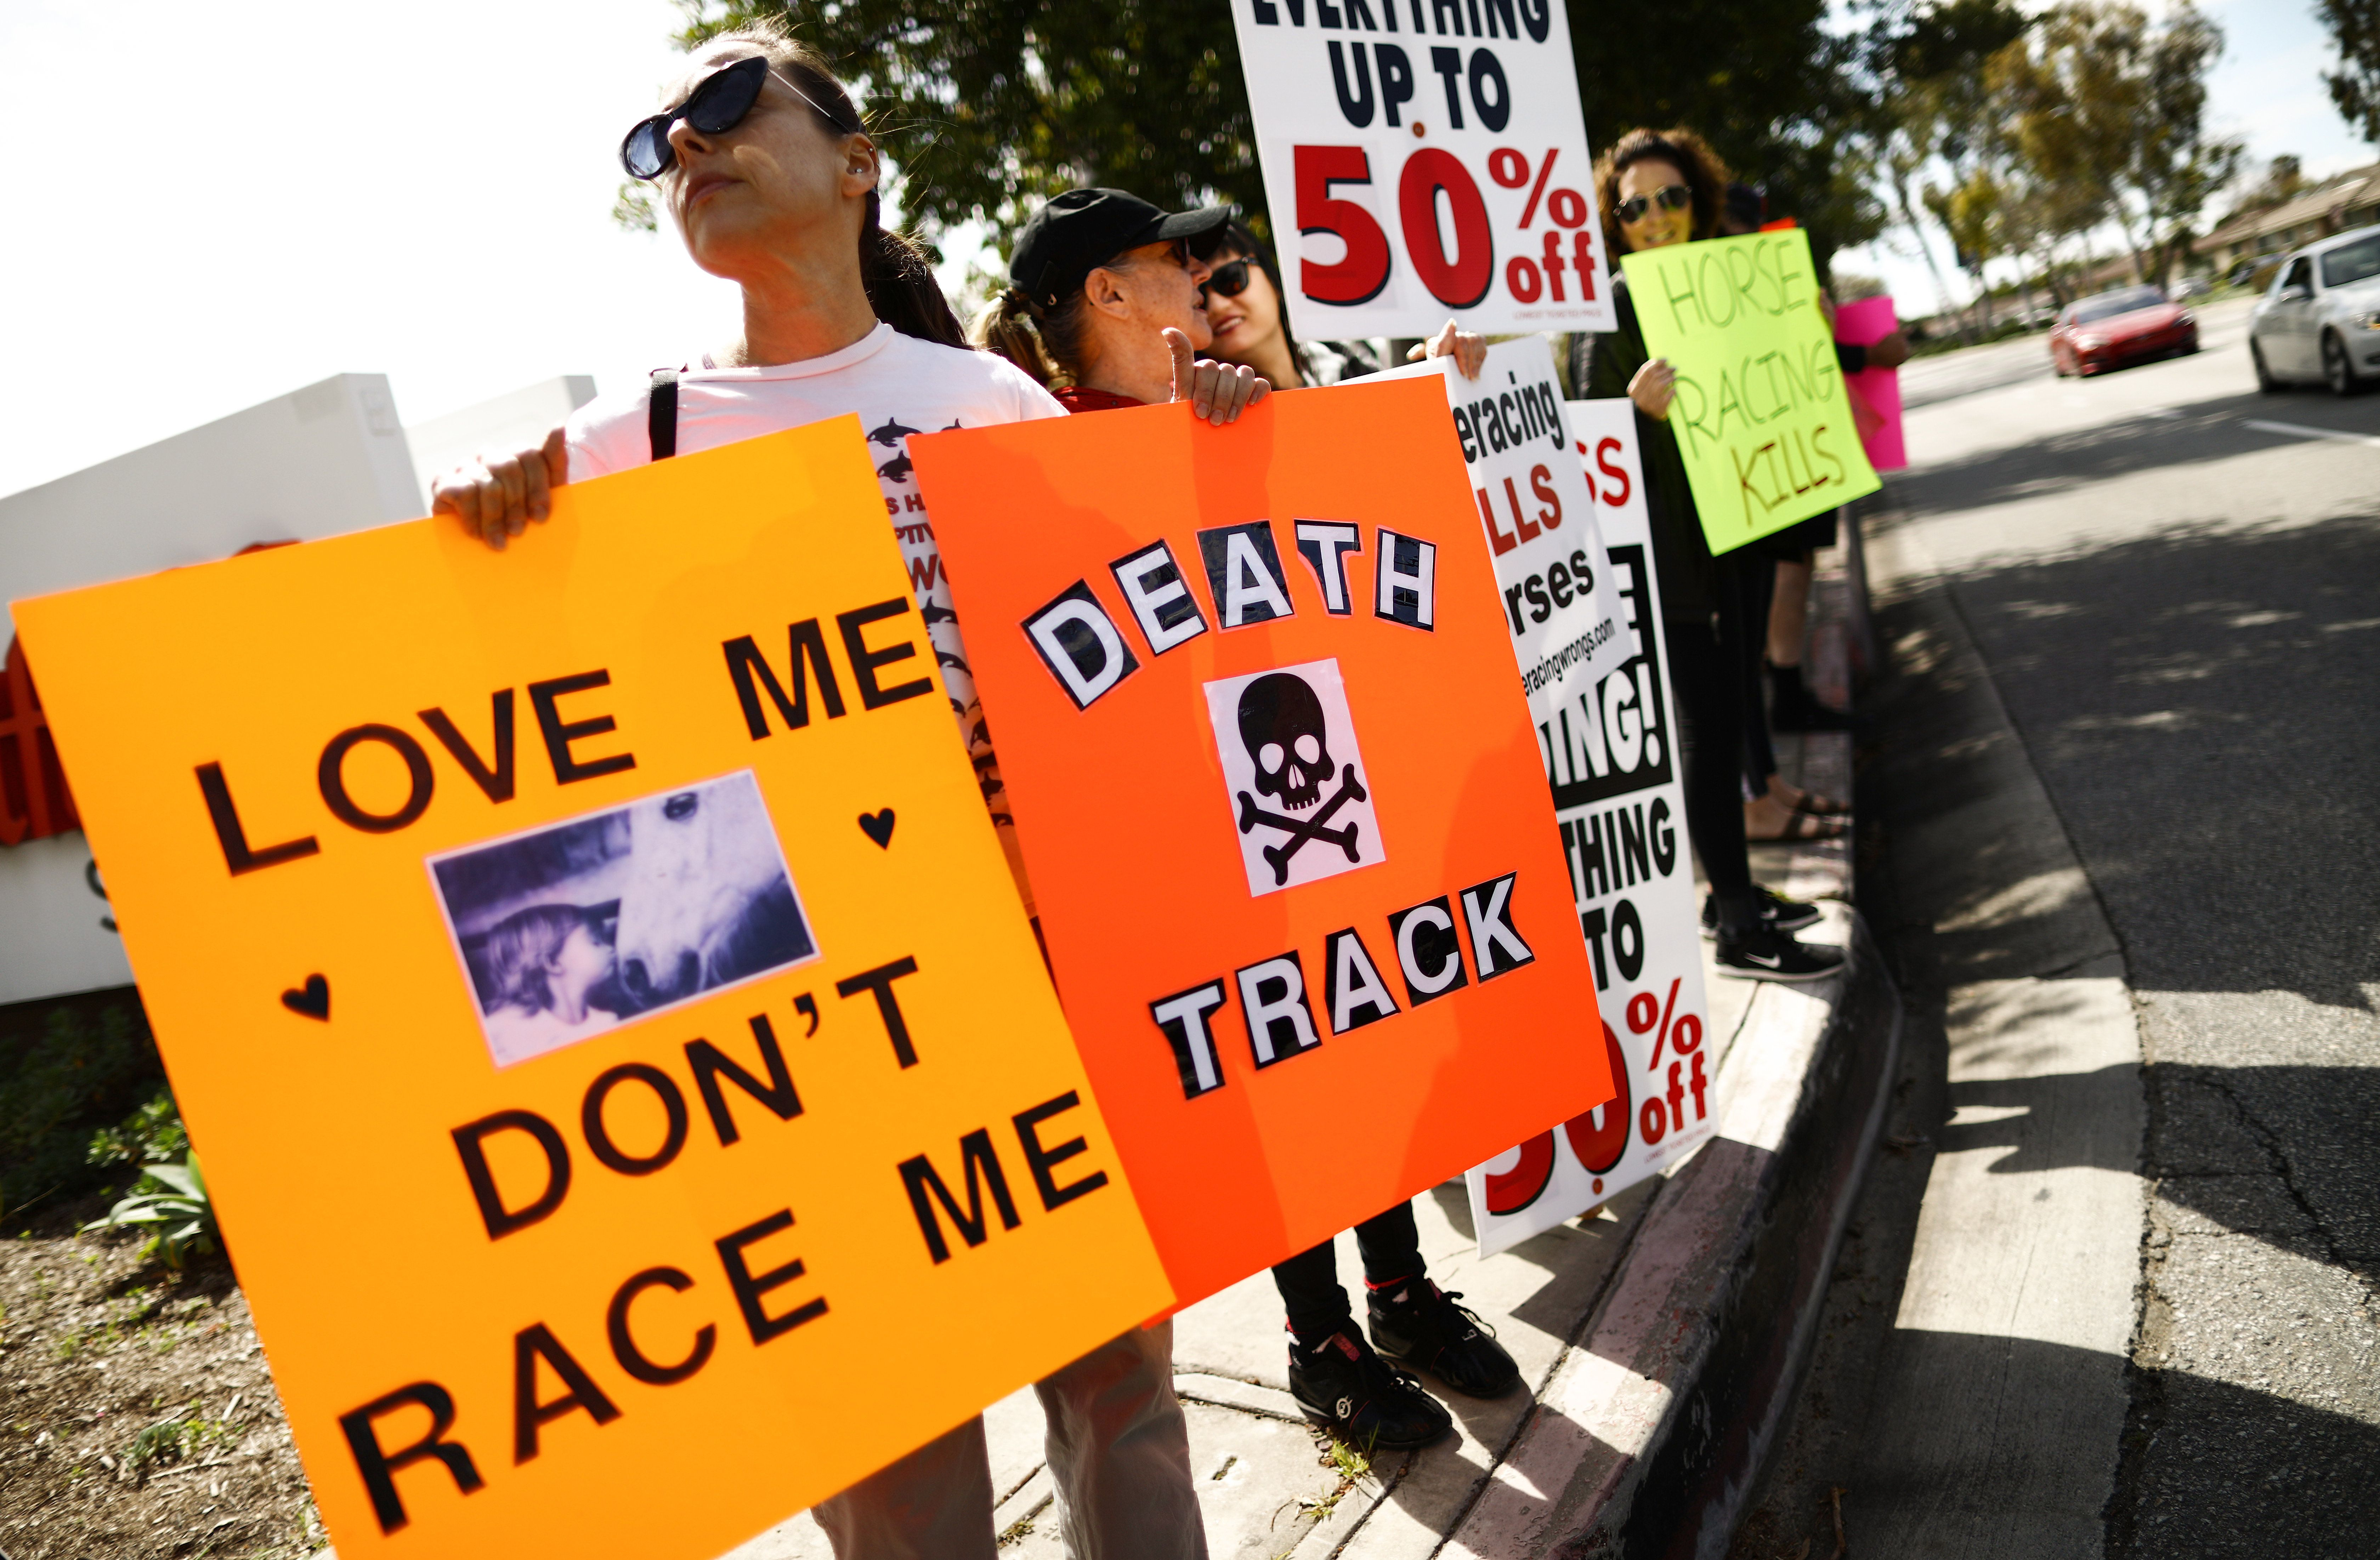 ARCADIA, CALIFORNIA - MARCH 10:  Animal rights activists protest horse racing deaths outside Santa Anita Park on March 10, 2019 in Arcadia, California. Santa Anita has suspended horse racing after 21 horses died at the famed racetrack since December 26. The track is reportedly eyeing a March 22nd date to re-start races as an investigation into the cause of the deaths continues. (Photo by Mario Tama/Getty Images)